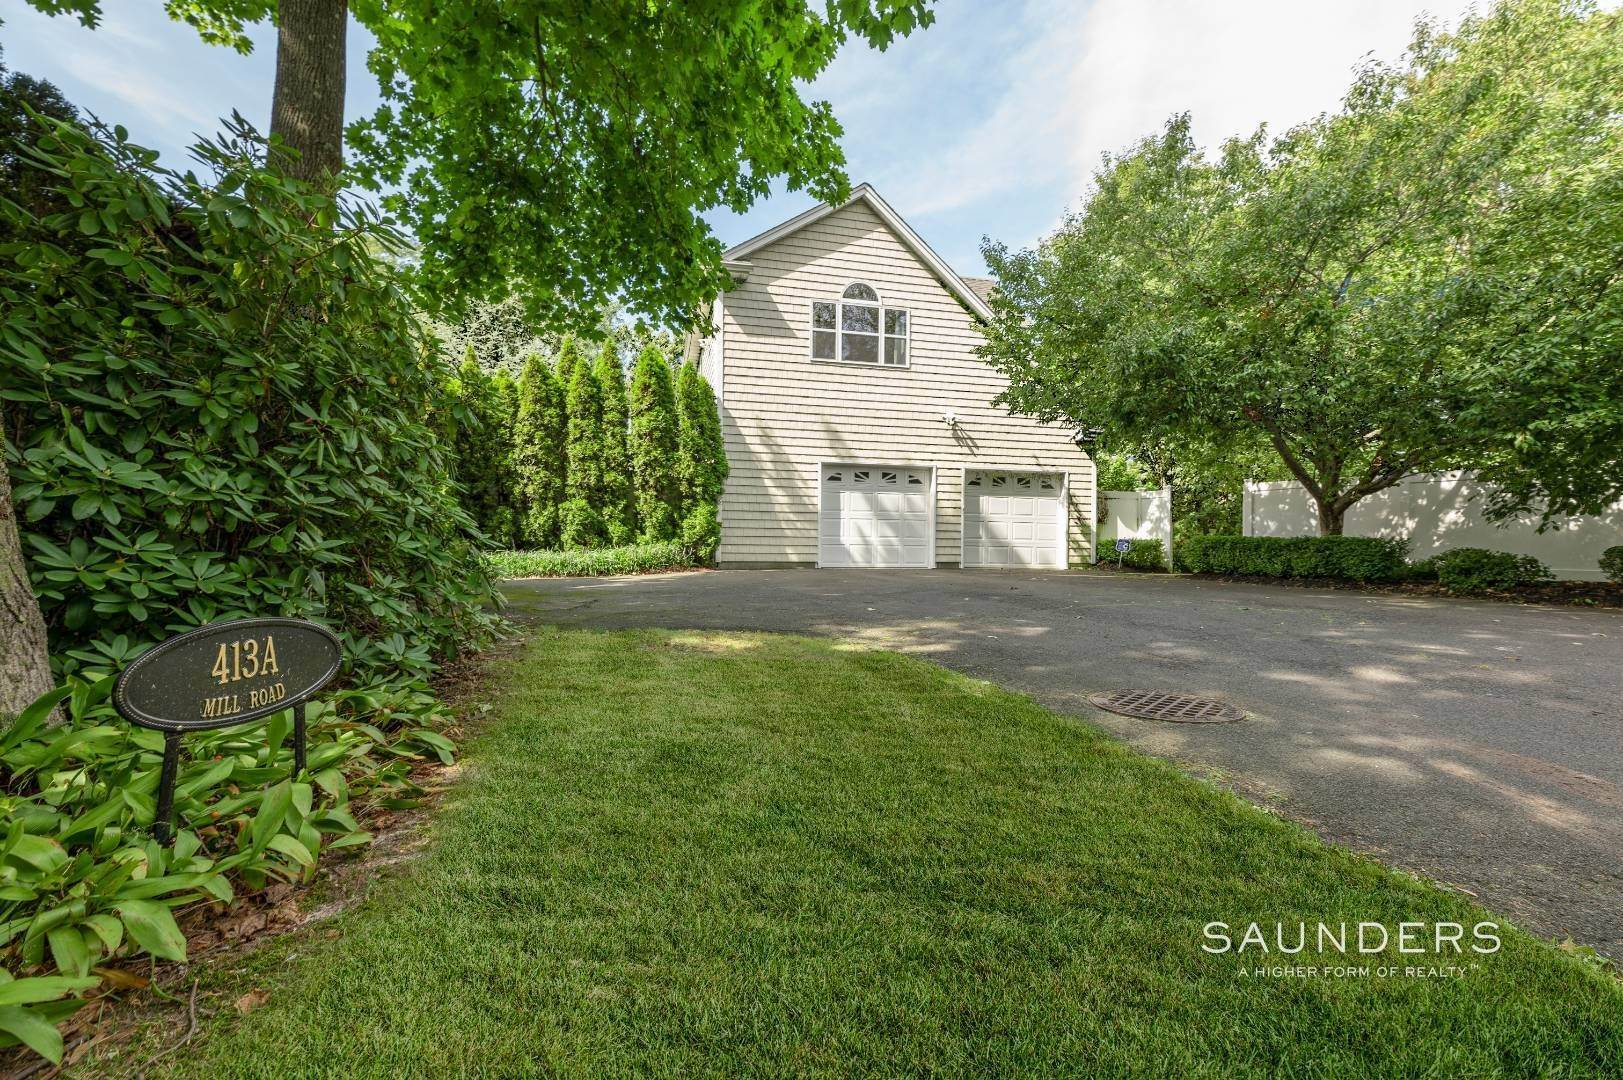 21. Single Family Homes for Sale at Spacious And Private Minutes From The Beach! 413a Mill Road, Westhampton, Southampton Town, NY 11977